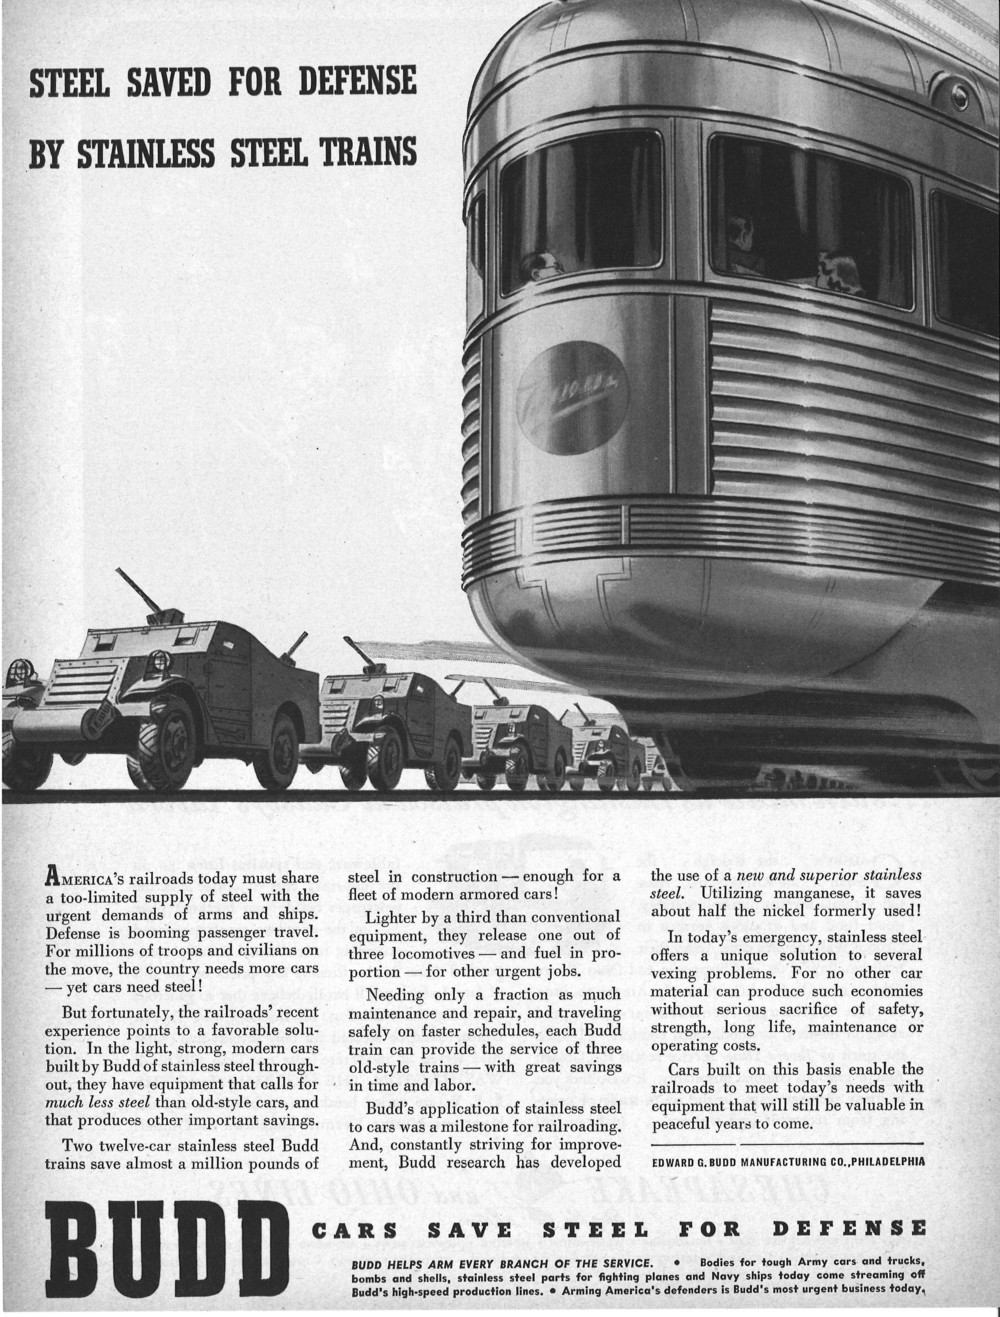 Budd Steel Saved For Defense By Stainless Steel Trains.jpg